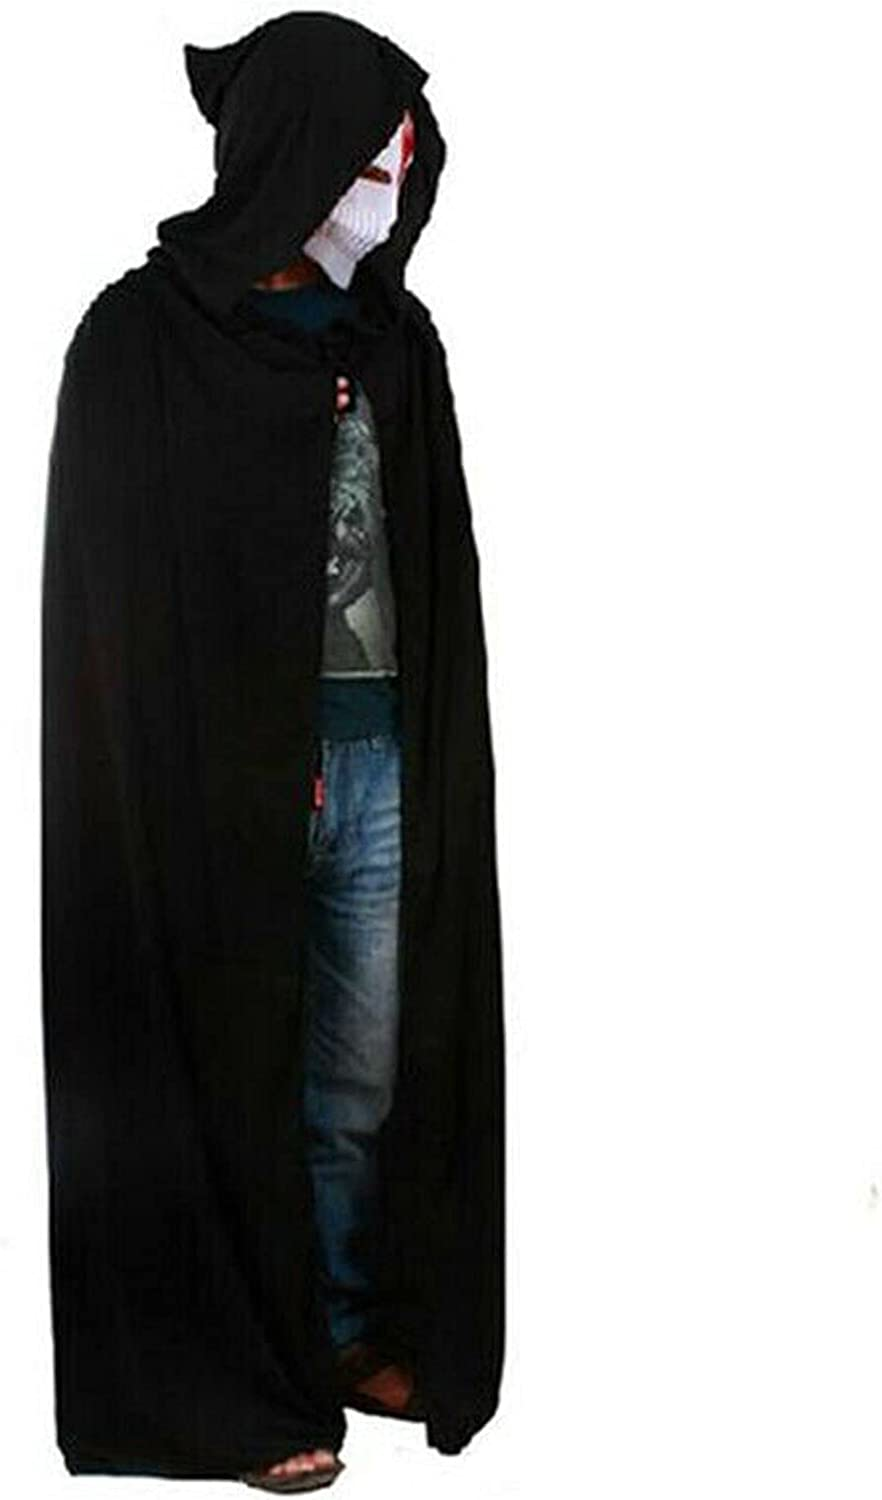 YHshop Halloween Cloak New Max 83% OFF products world's highest quality popular Loose Women Capes Hooded Adult